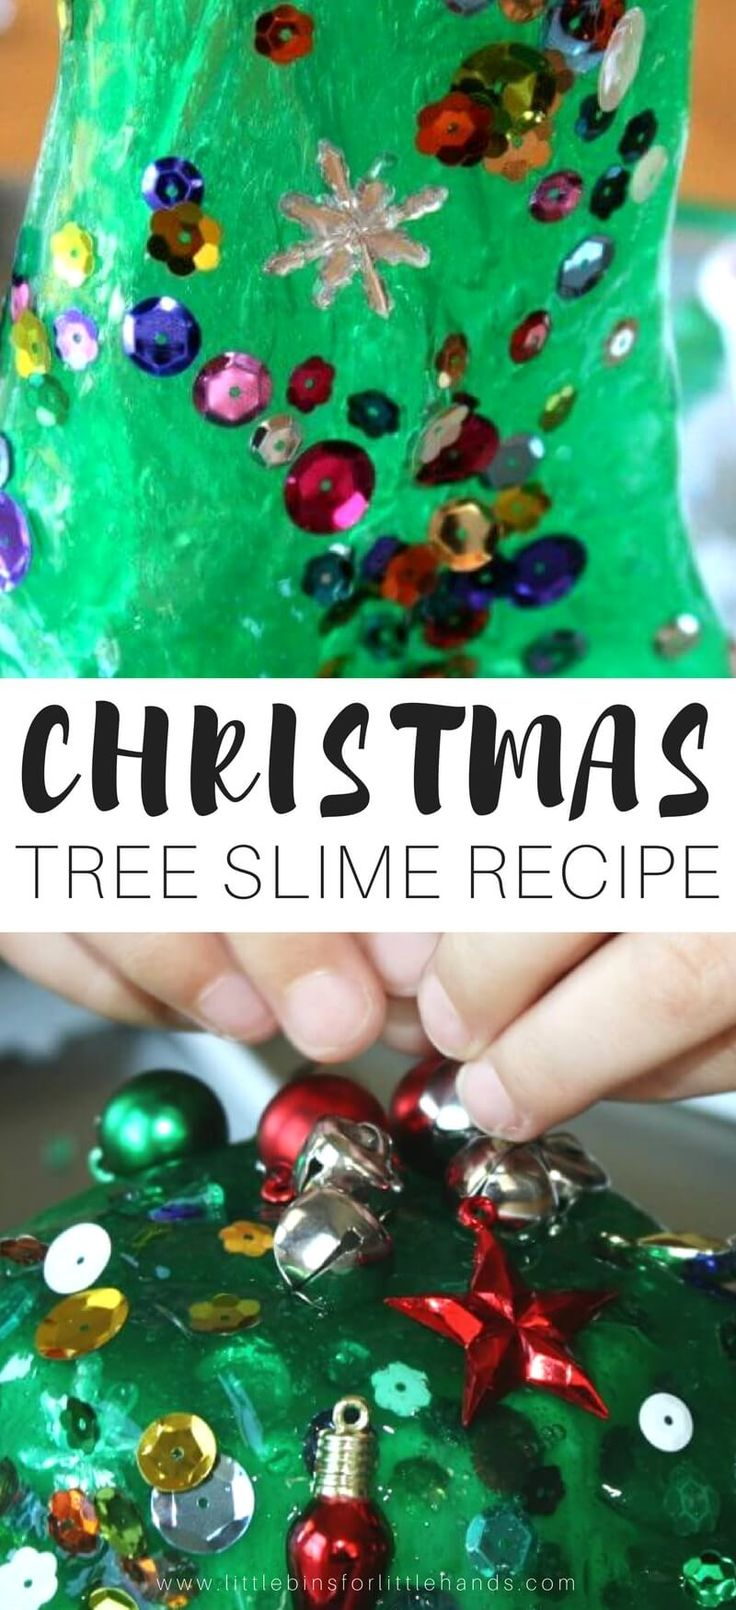 Make a Christmas tree out of slime for perfect Christmas science with our Christmas tree homemade slime! Slime is a pretty fun activity for kids and it's so easy to make. Our easy slime recipe lends itself to so many themes for the holidays and seasons! Try this fun Christmas tree themed homemade slime for the holidays and learn how to make homemade slime year round! #slime #slimerecipe #christmasslime #homemadeslime #science